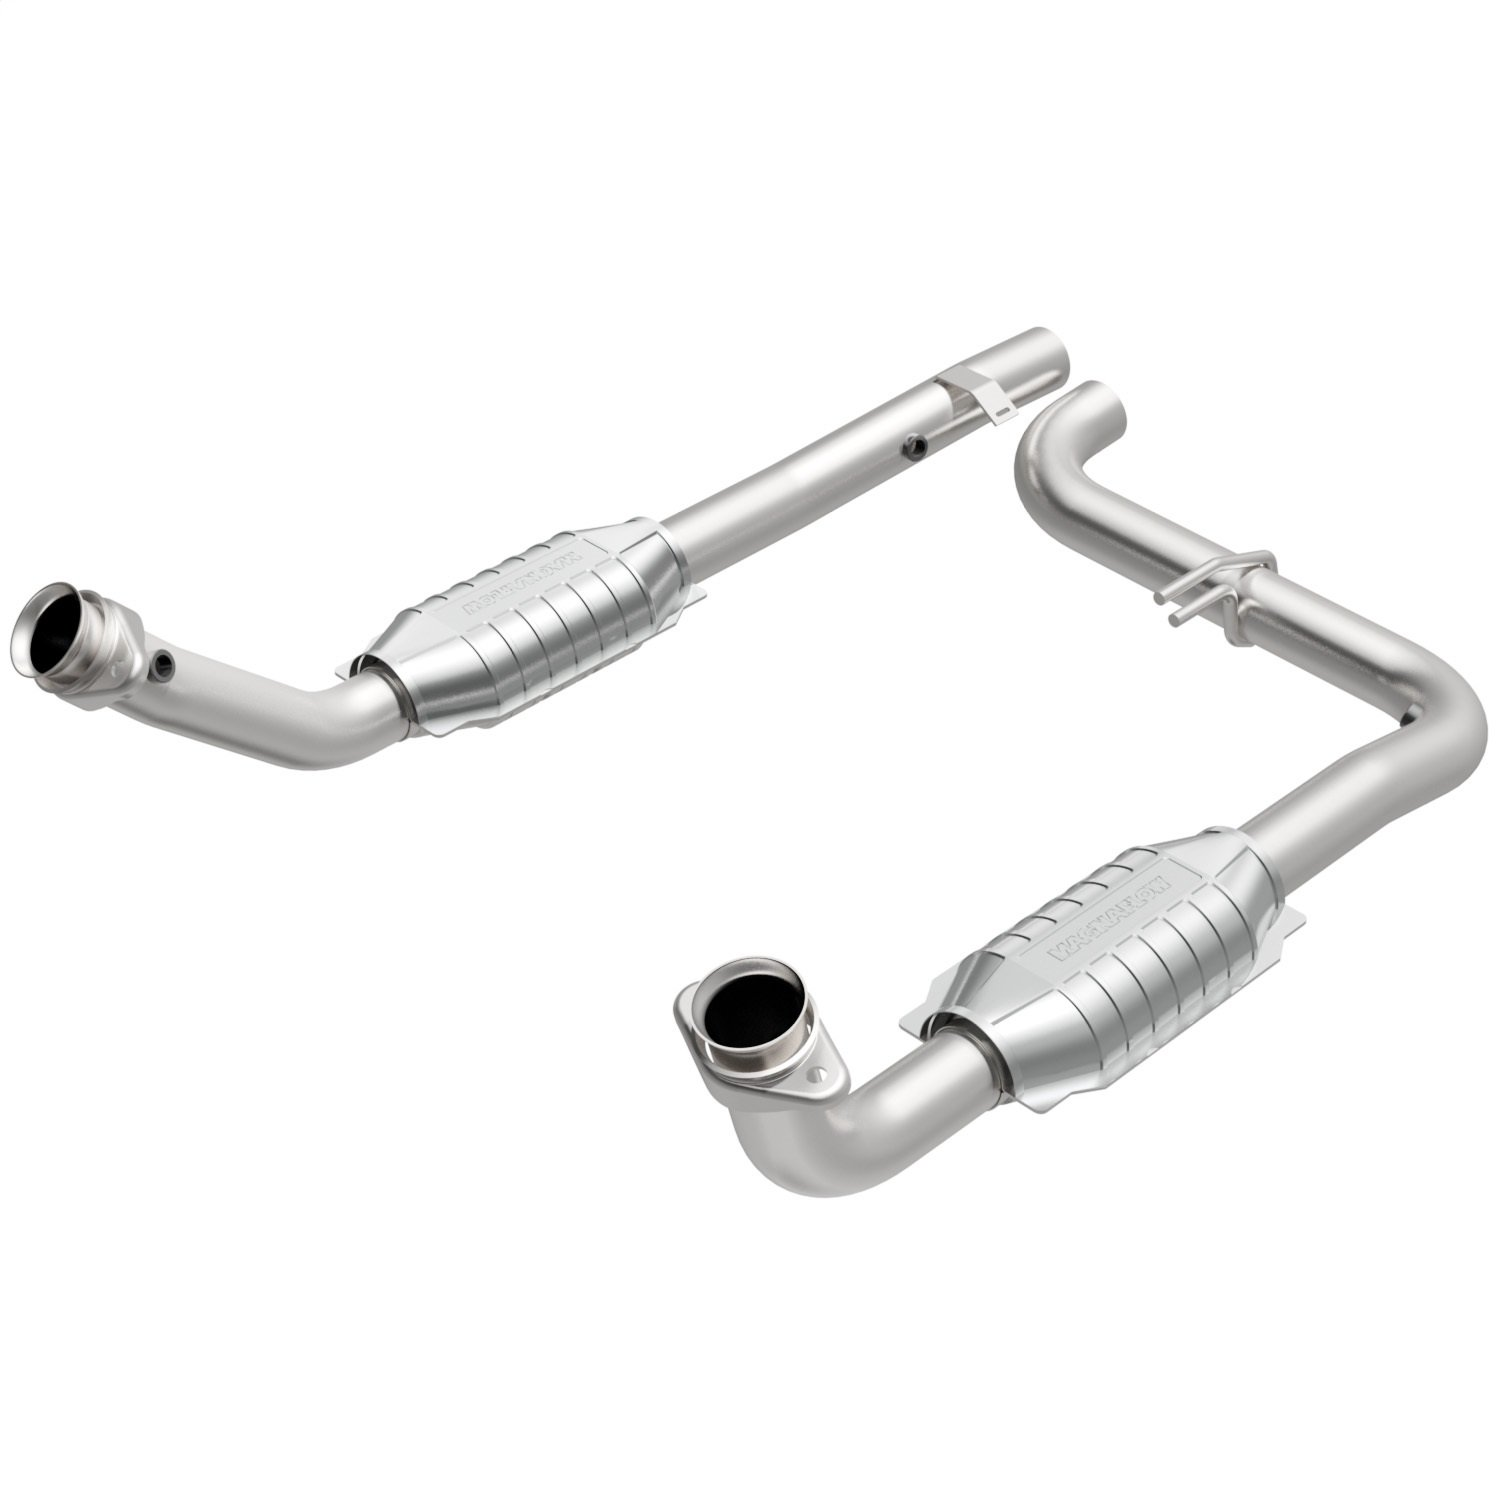 Non CARB compliant MagnaFlow 49217 Direct Fit Catalytic Converter